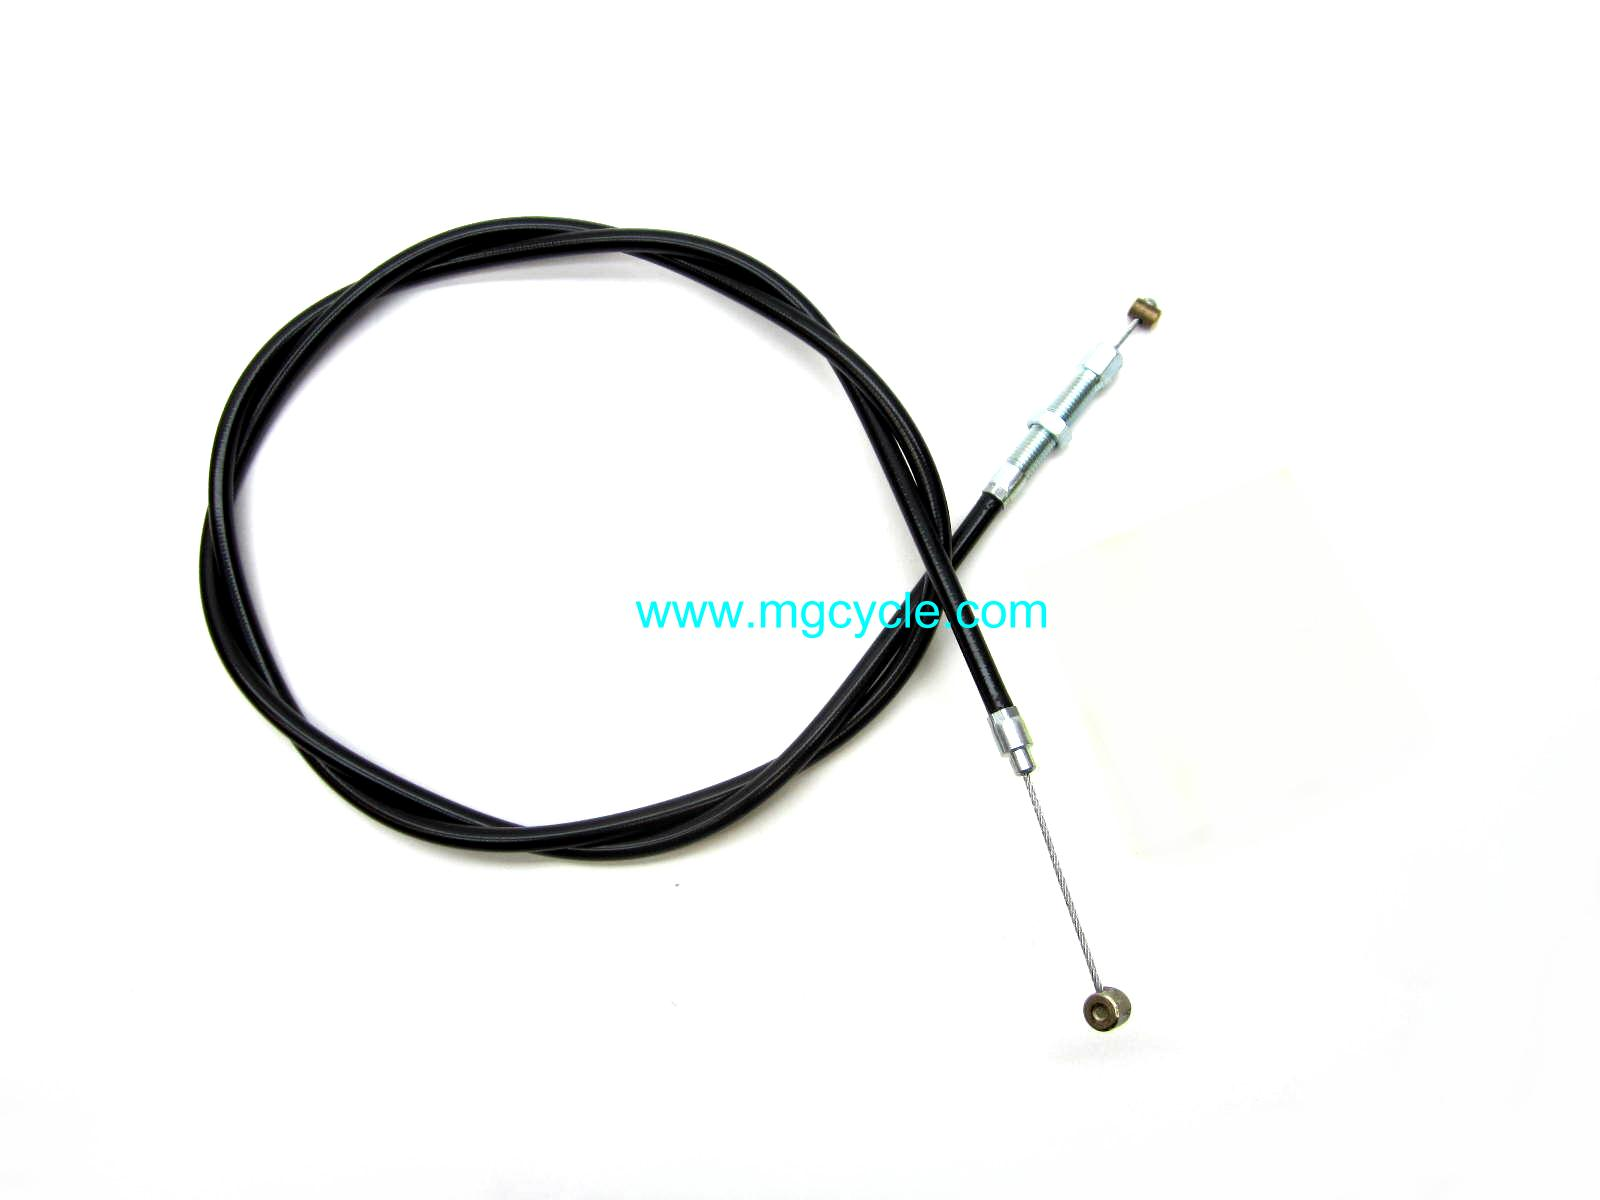 Clutch cable V700 Ambassador V750 Special, longer Police length